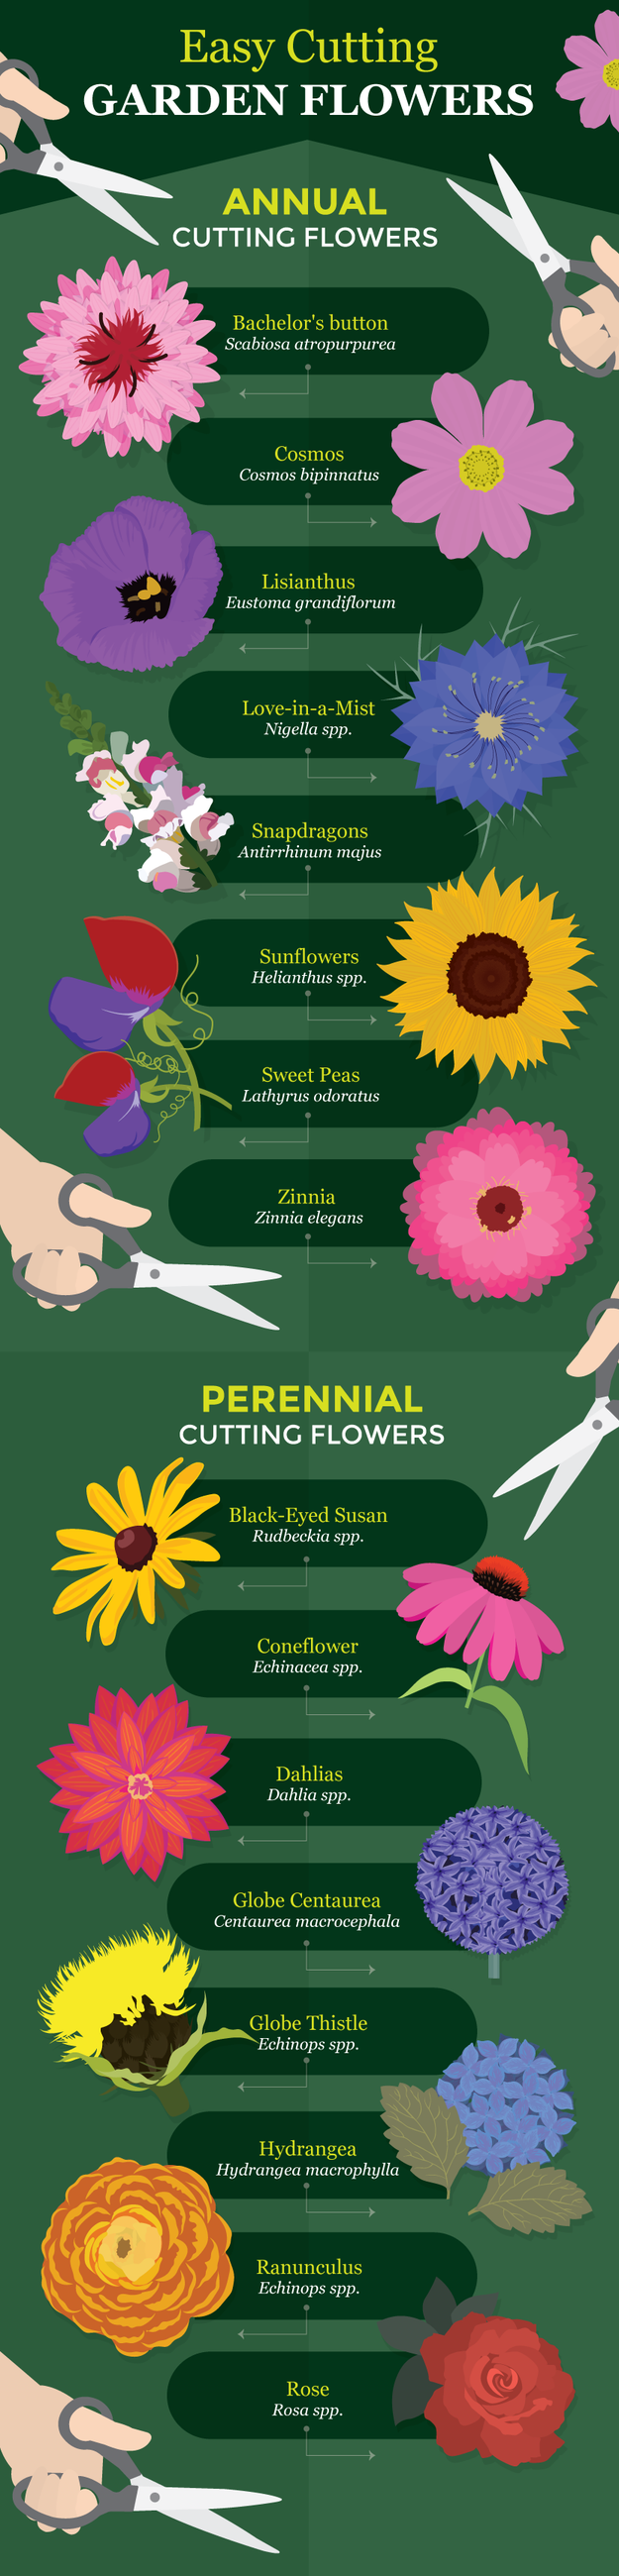 Here's which flowers look best in bouquets: